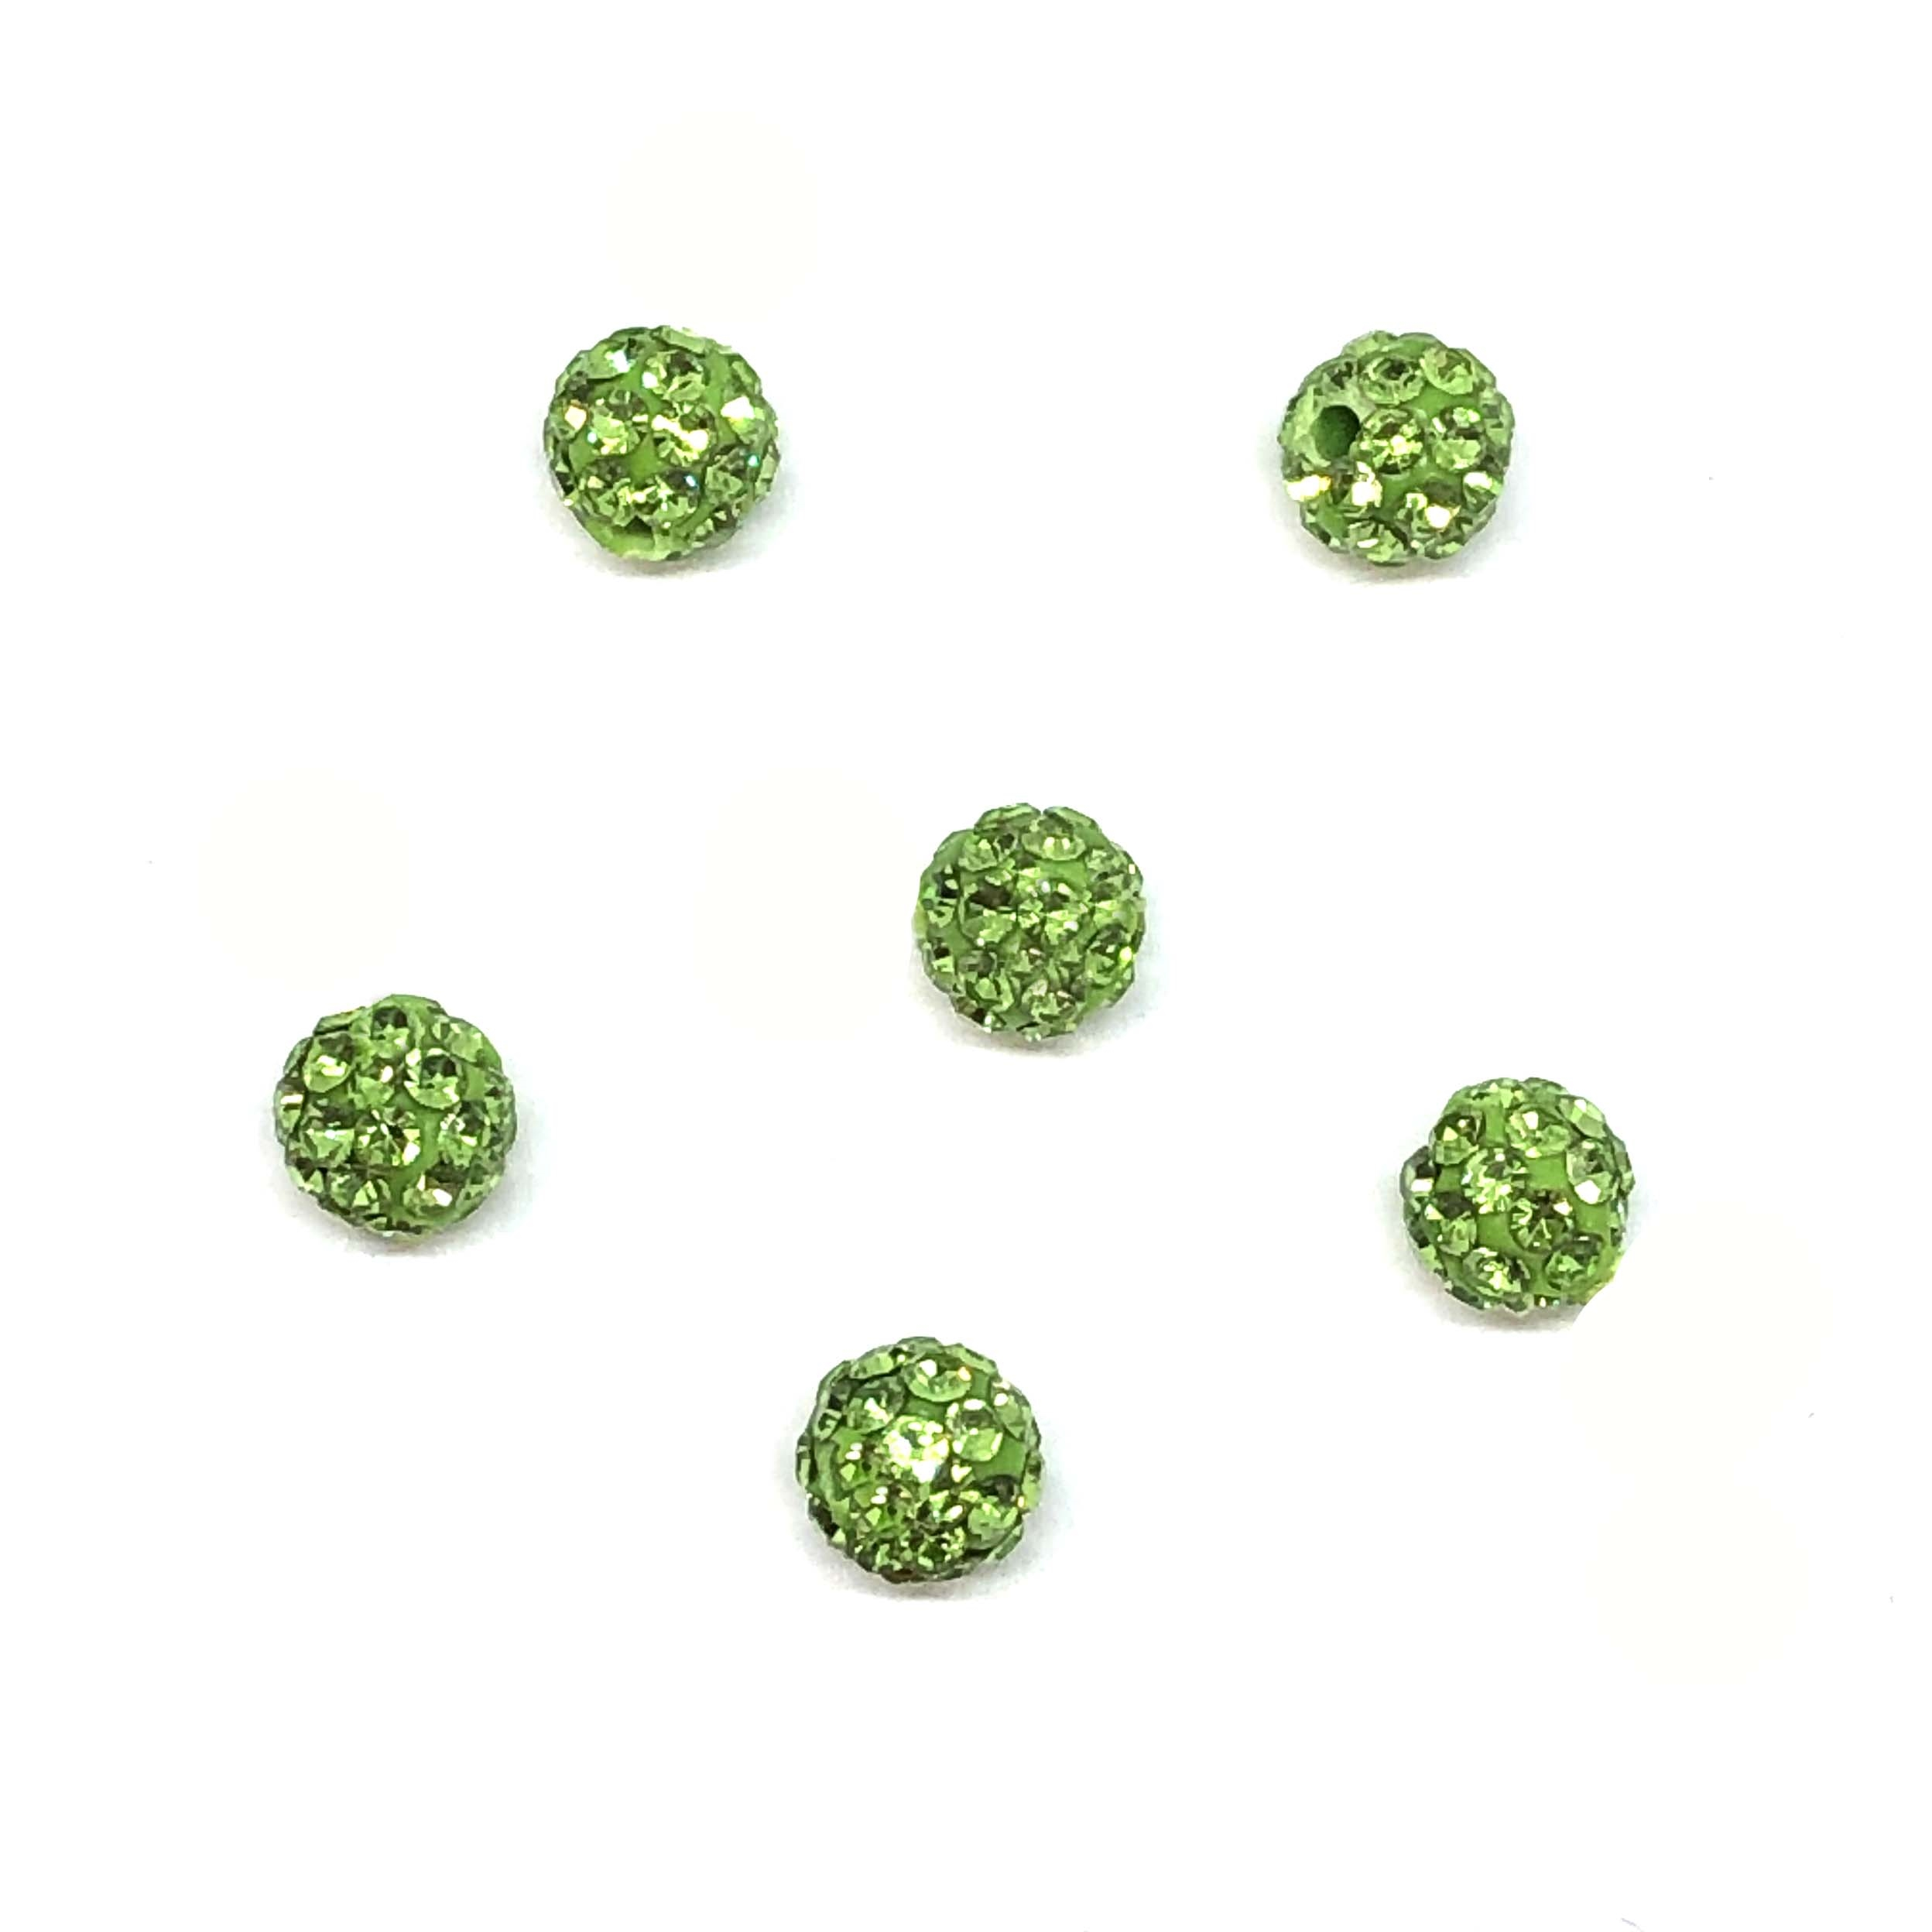 Rhinestone Pave Beads, Green Beads, 6mm, 0673, ball beads, glass beads, crystal stones, round beads, crystal beads, faceted, bead, glass, b'sue boutiques, jewelry making, jewelry findings, vintage supplies